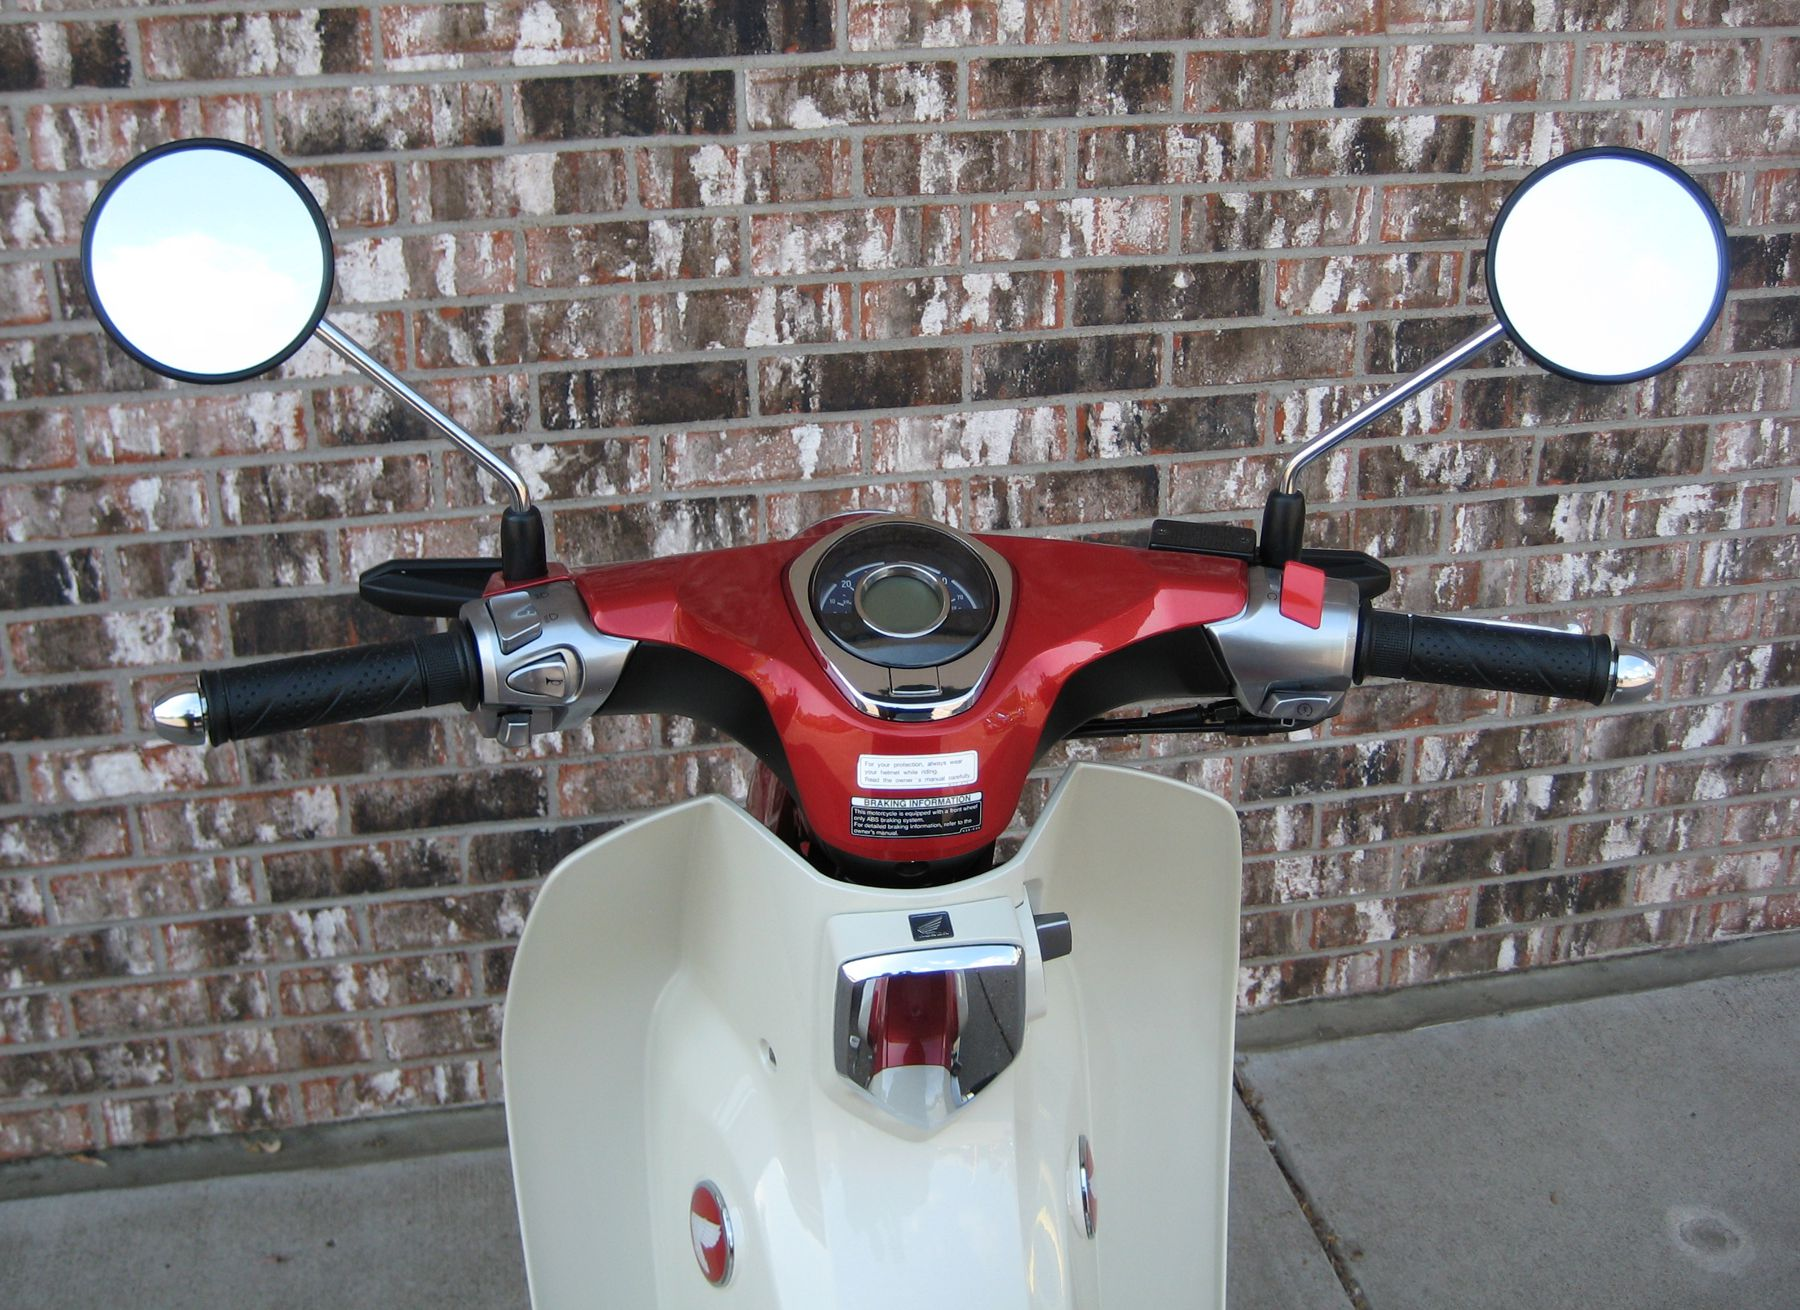 Rider view of the handlebars and dash cluster